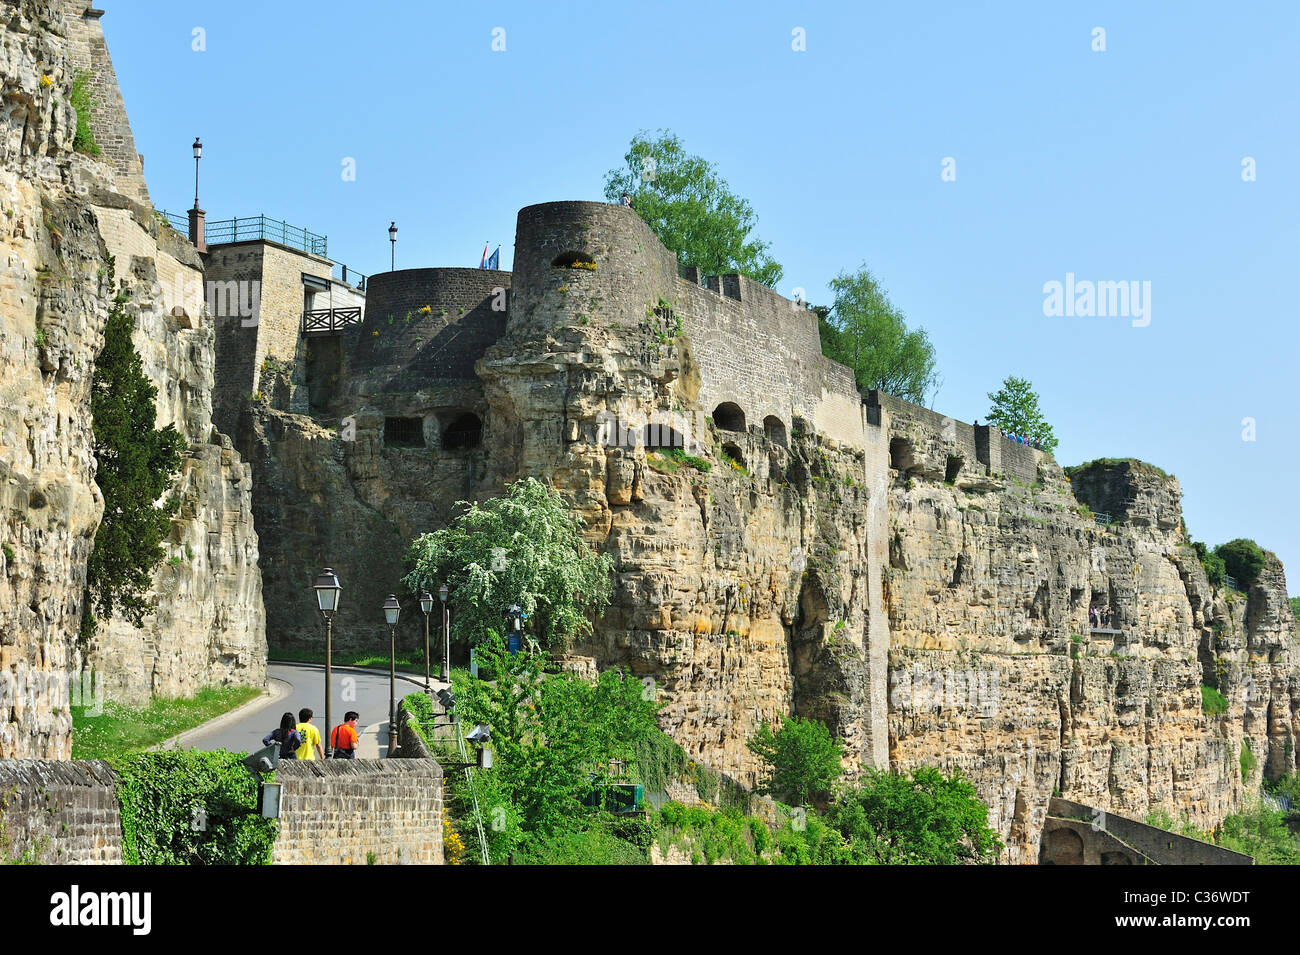 The Bock rock fortifications and casemates in Luxembourg, Grand Duchy of Luxembourg - Stock Image